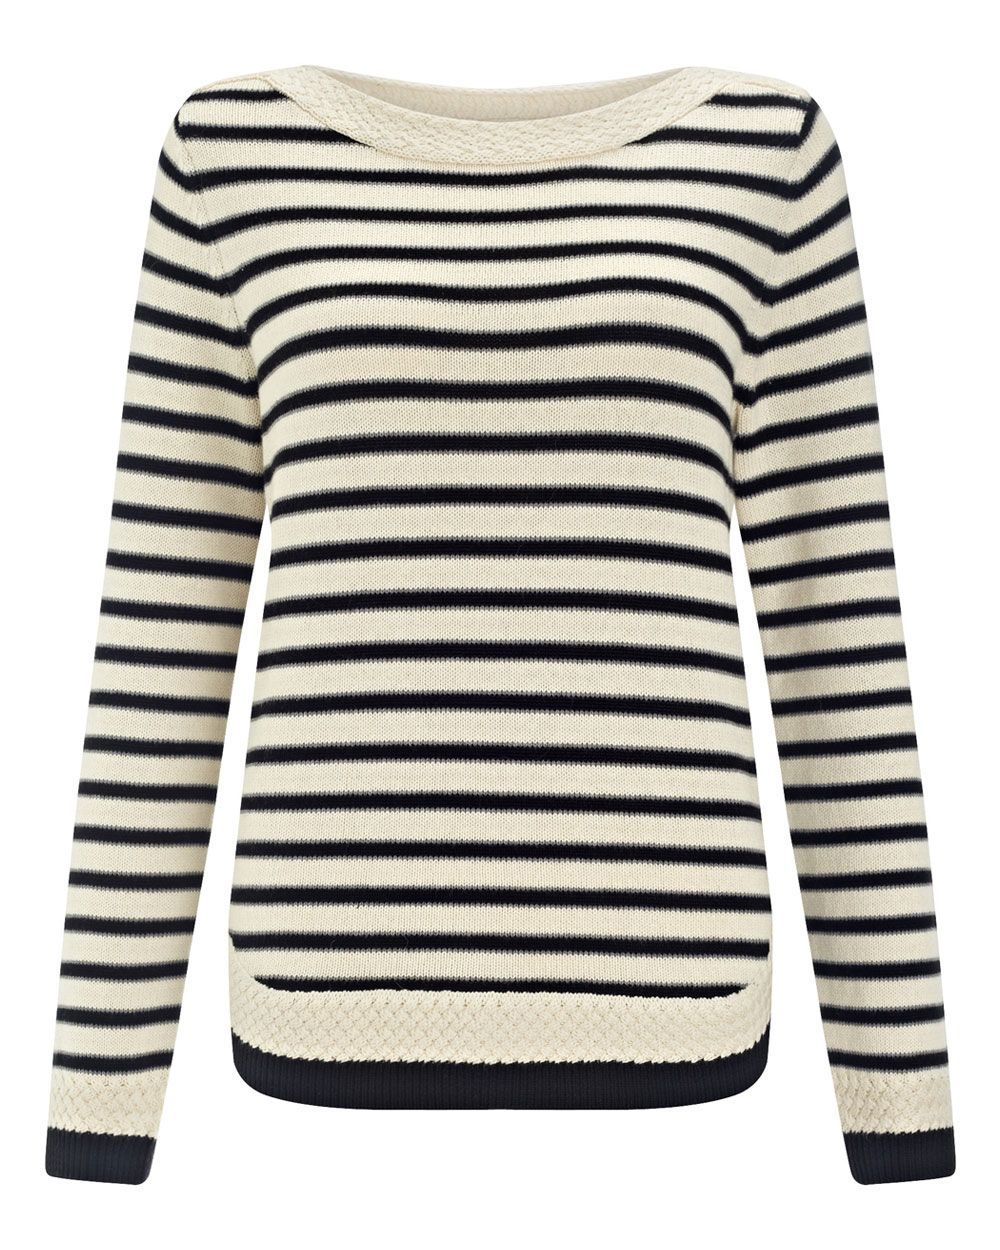 Stripe Cable Detail Jumper, Black - neckline: round neck; pattern: horizontal stripes; style: standard; secondary colour: ivory/cream; predominant colour: black; occasions: casual, creative work; length: standard; fibres: cotton - mix; fit: standard fit; sleeve length: long sleeve; sleeve style: standard; texture group: knits/crochet; pattern type: knitted - fine stitch; season: a/w 2015; wardrobe: highlight